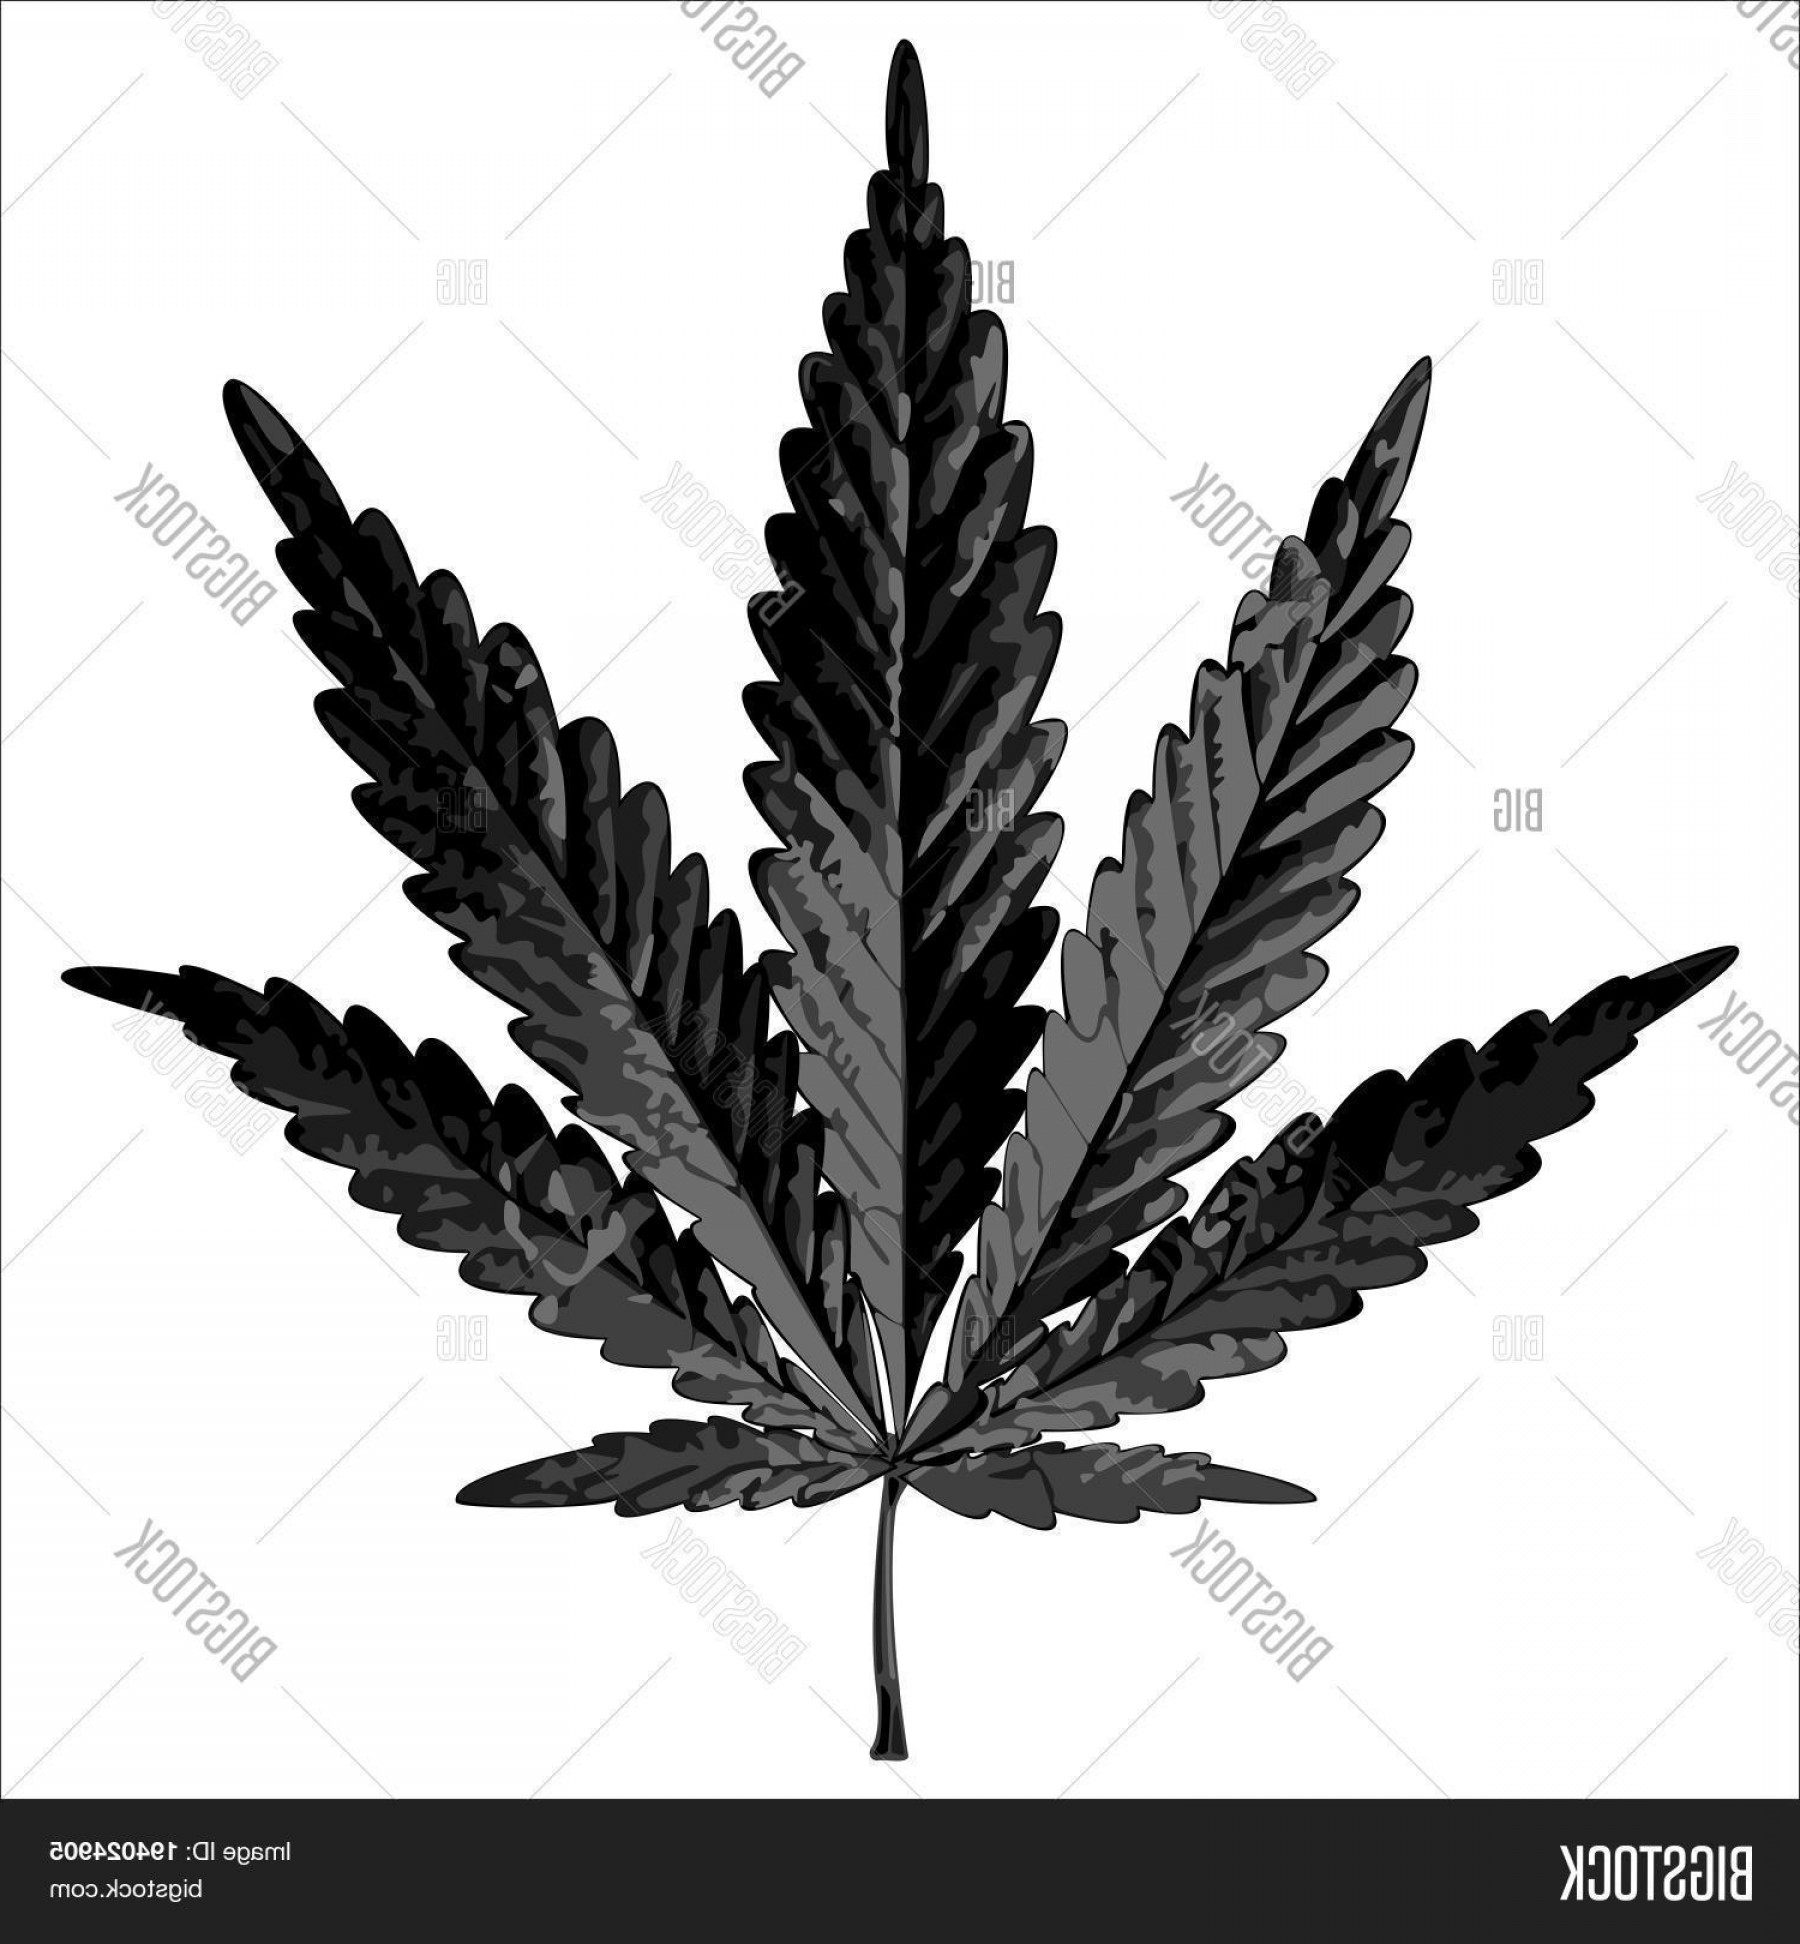 Black And White Vector Image Of Weed Plants: Stock Vector Black Cannabis Leaf On A White Background Vector